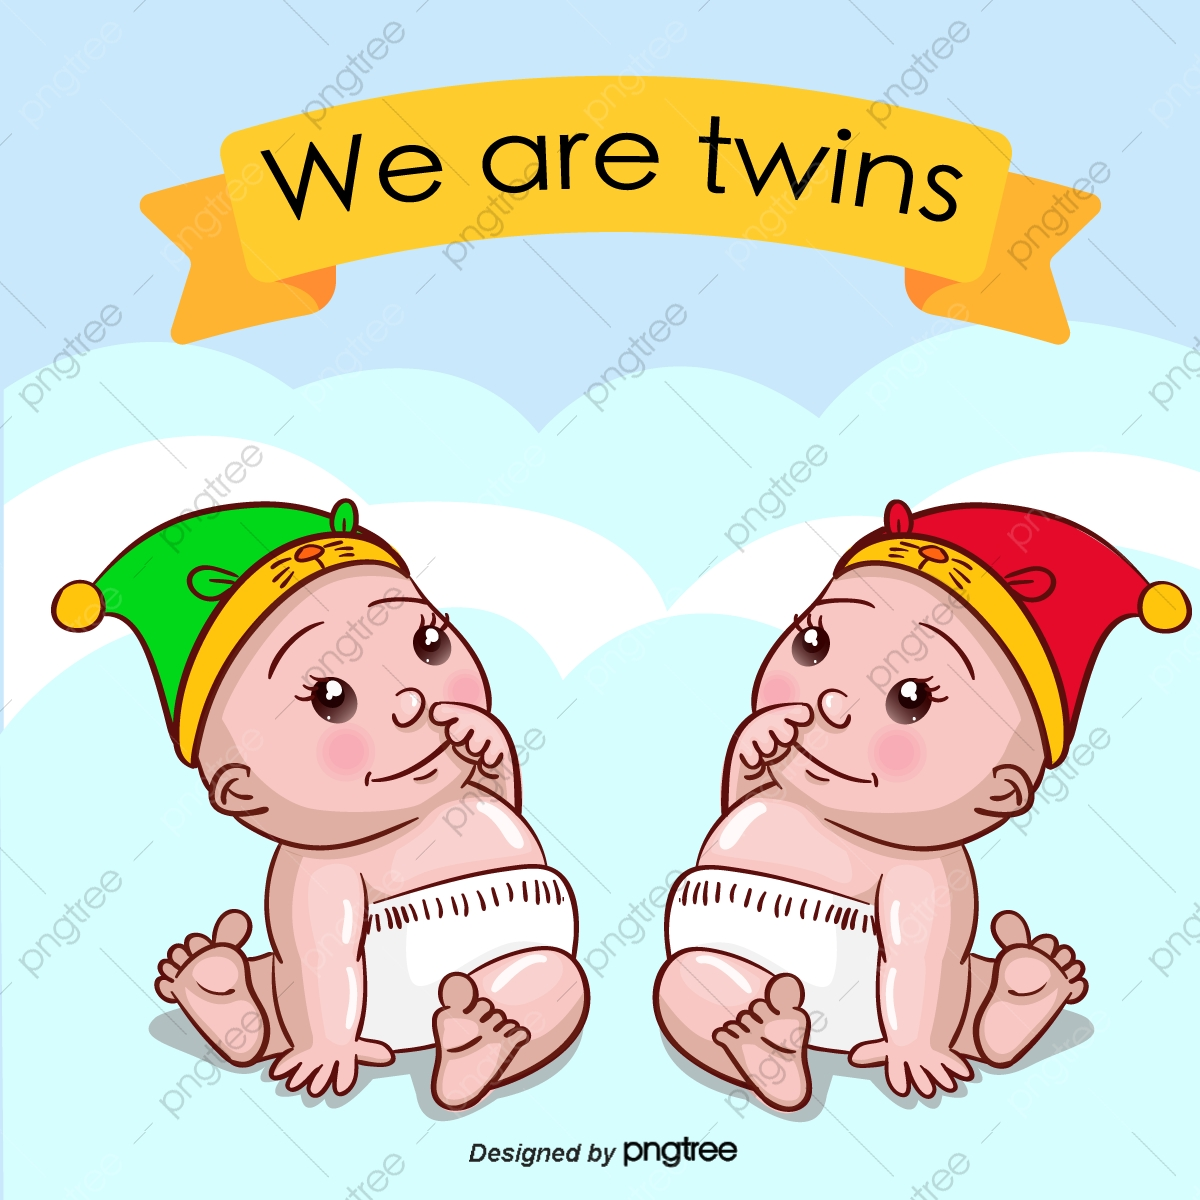 Infant clipart boy girl twin, Infant boy girl twin Transparent FREE for  download on WebStockReview 2020